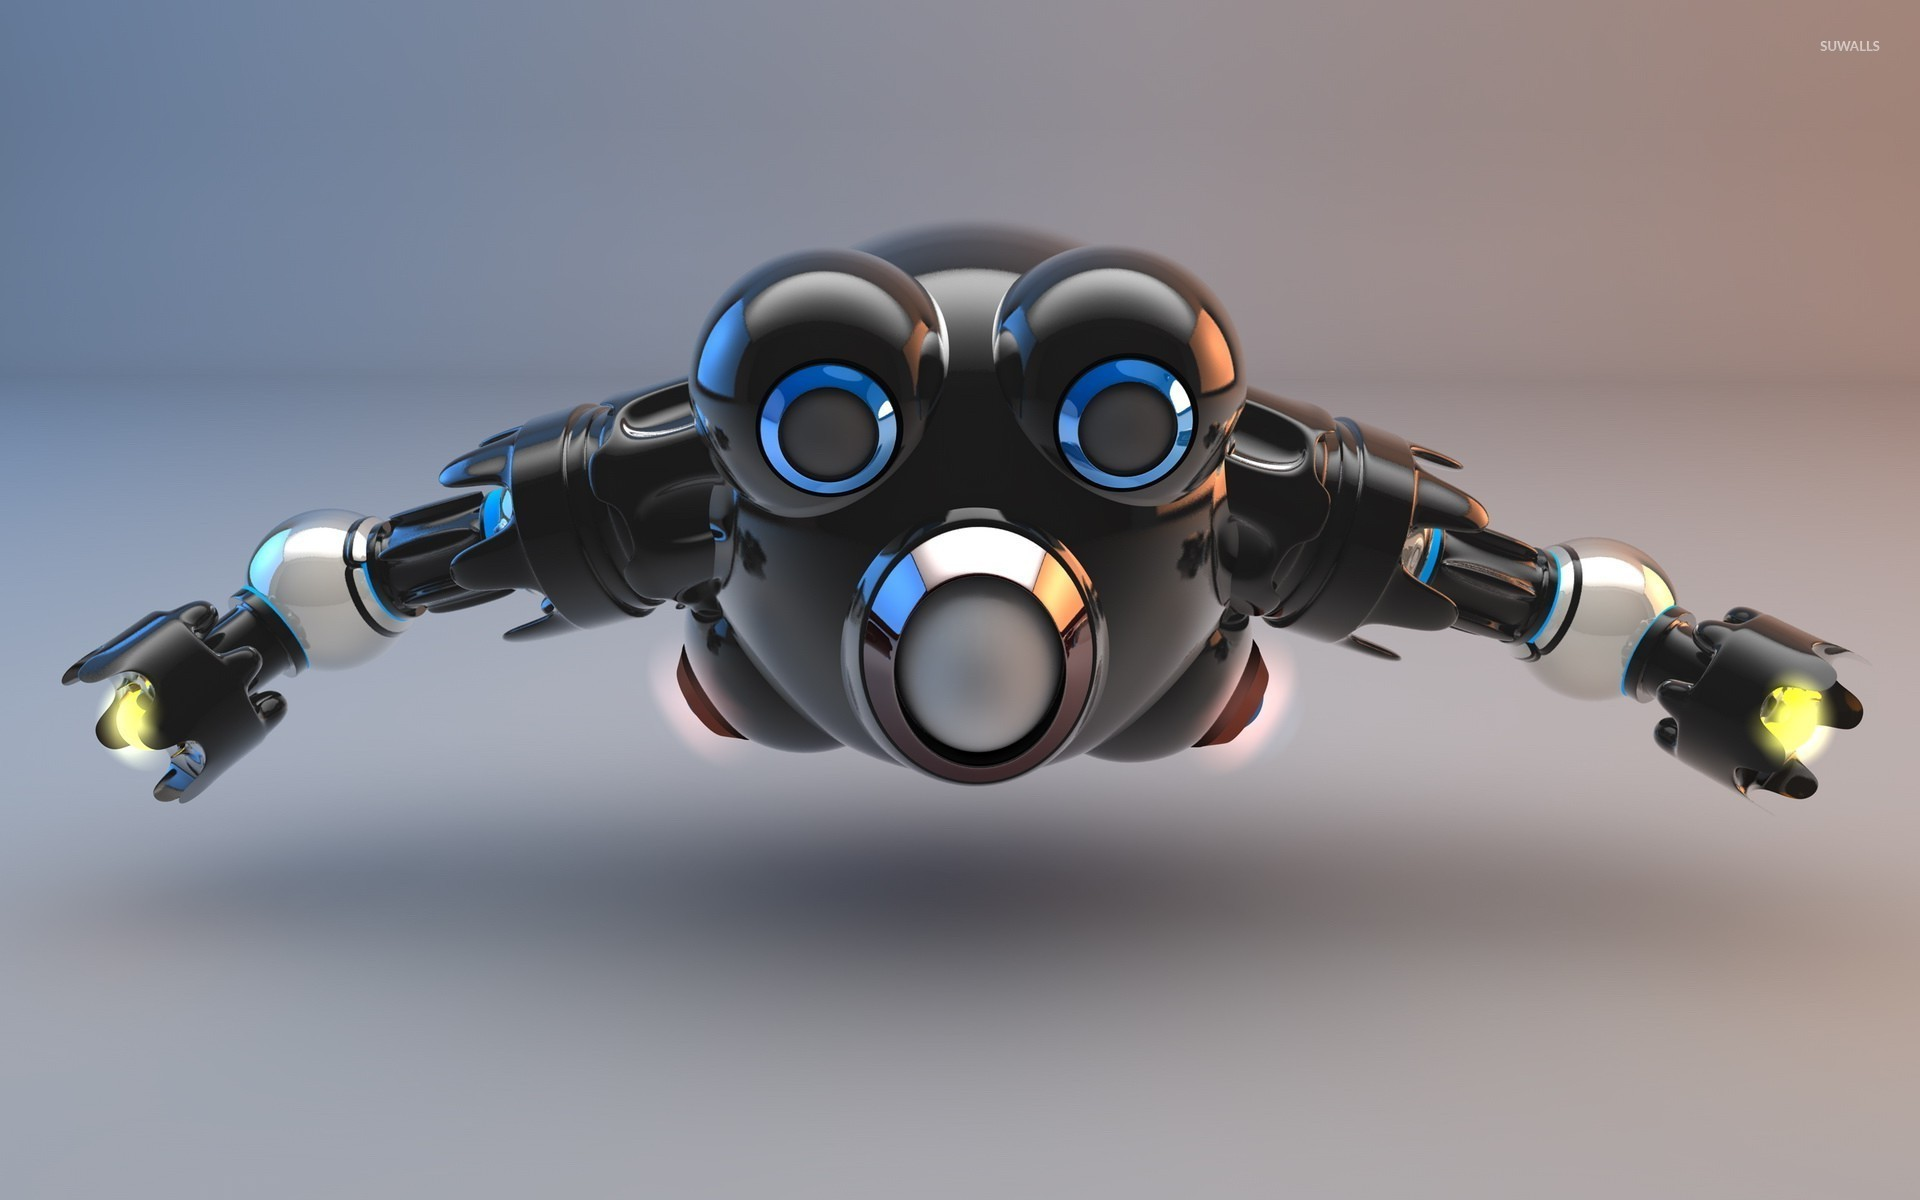 Cool 3d Wallpapers For Walls Flying Robot Wallpaper 3d Wallpapers 24259